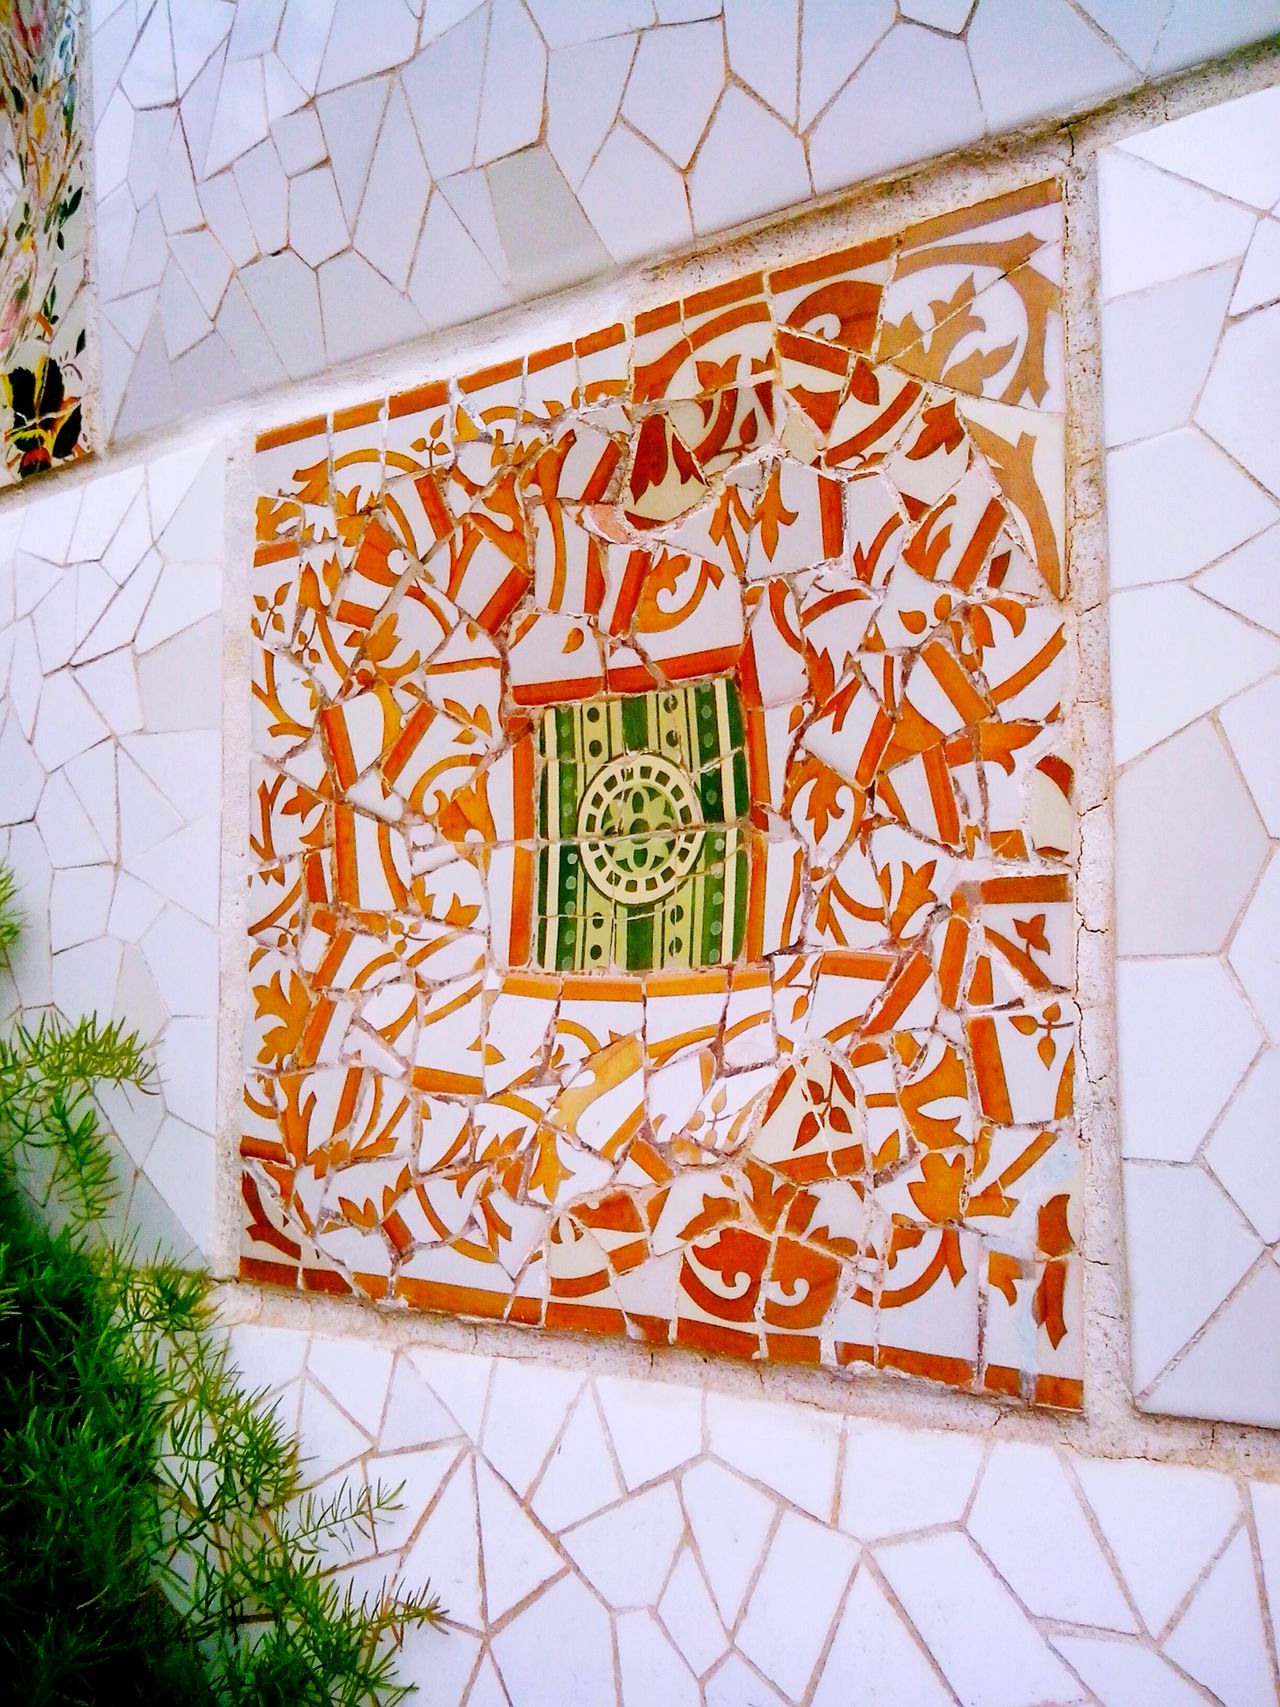 Built Structure Creativity Brick Wall Outdoors Modern Art Famous PlaceArt And Craft Tourism Pattern, Texture, Shape And Form Background Backgrounds Bright Colors Gaudi Decoration Park Guell Barcelona Barcelona, Spain Ceramics Ceramic Art Textured  Antoni Gaudí ArtWork Creativity Pattern Multi Colored